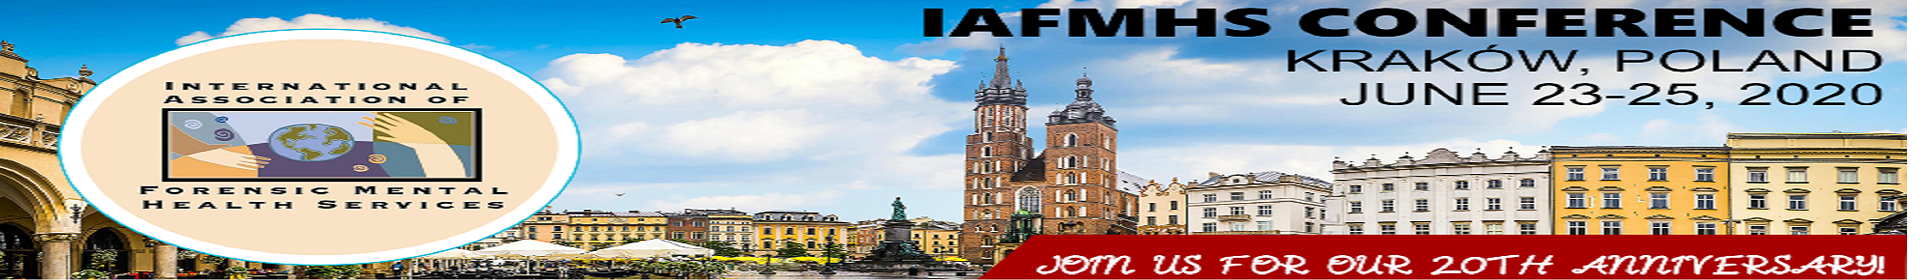 IAFMHS 2020 Event Banner